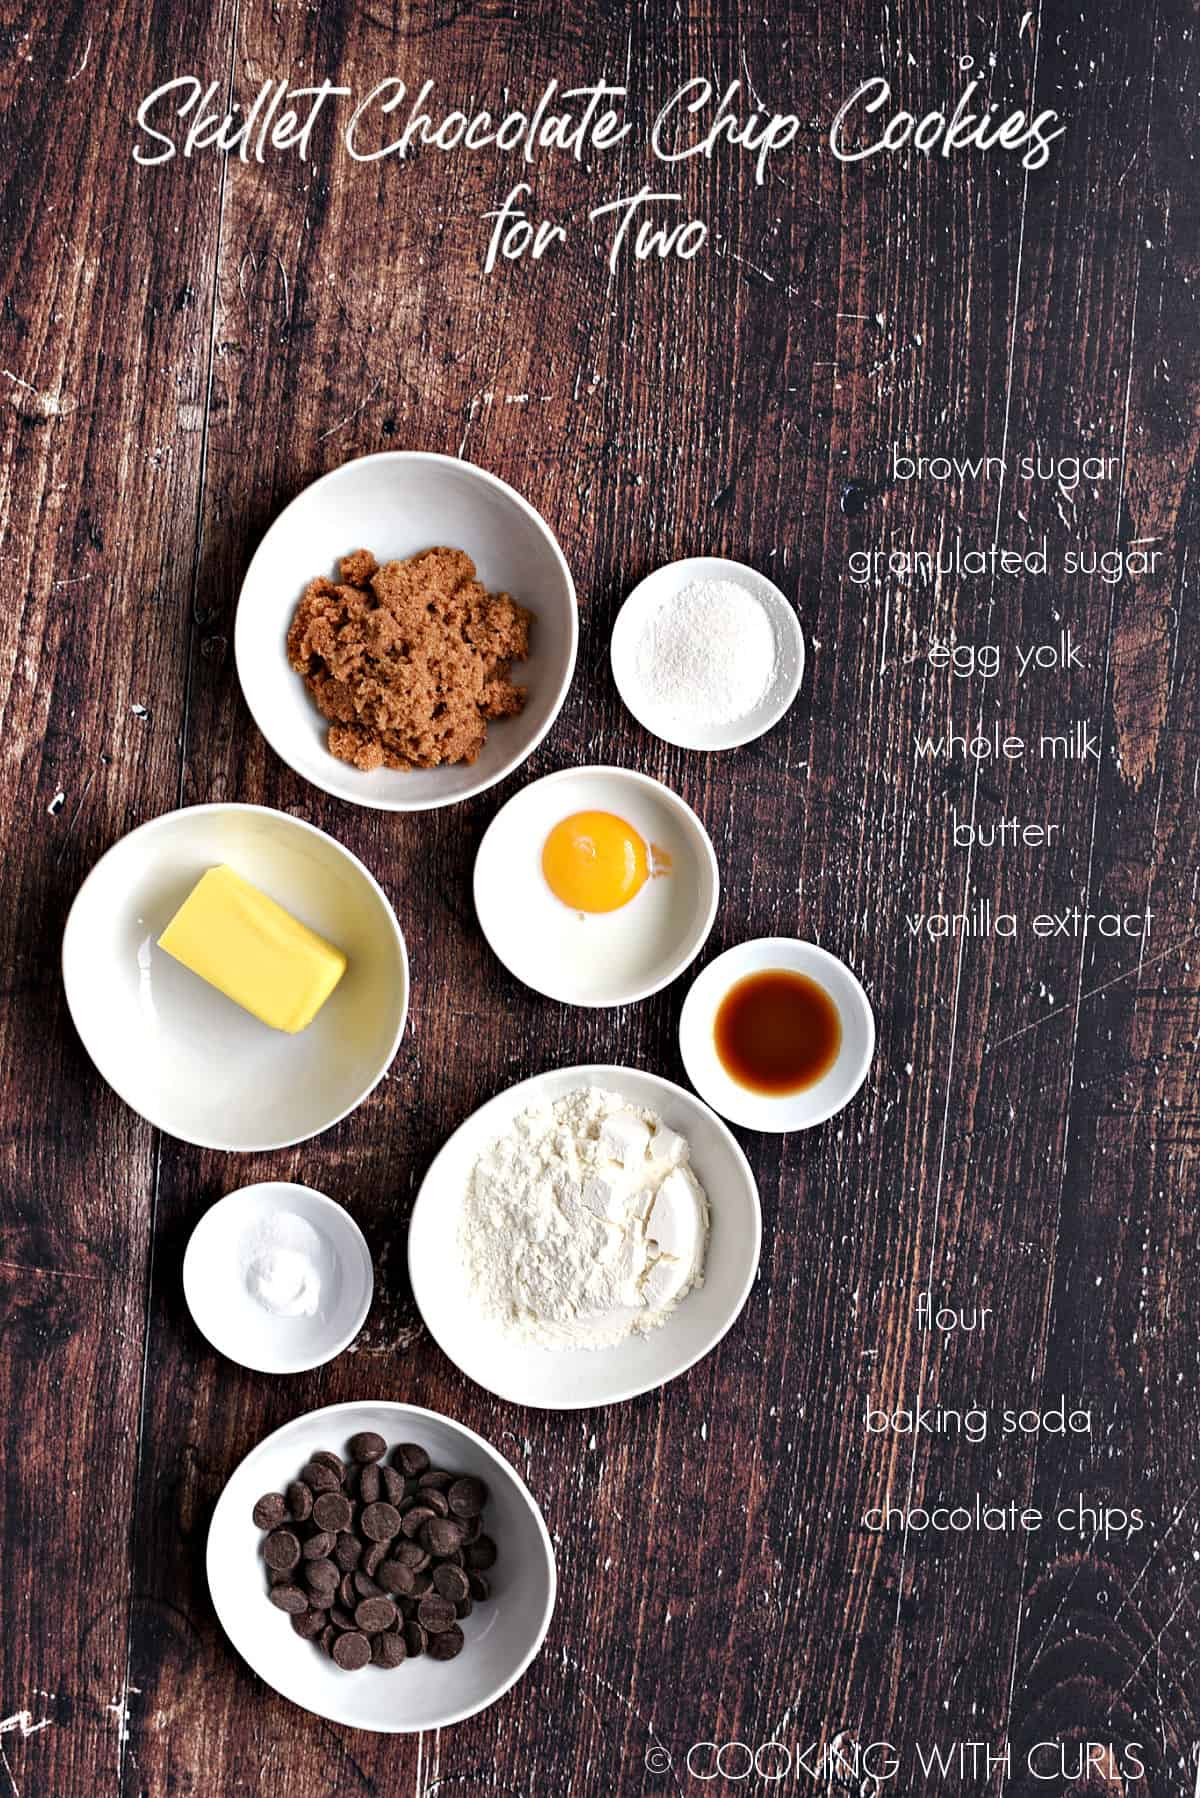 Ingredients to make Skillet Chocolate Chip Cookies for Two in white bowls.